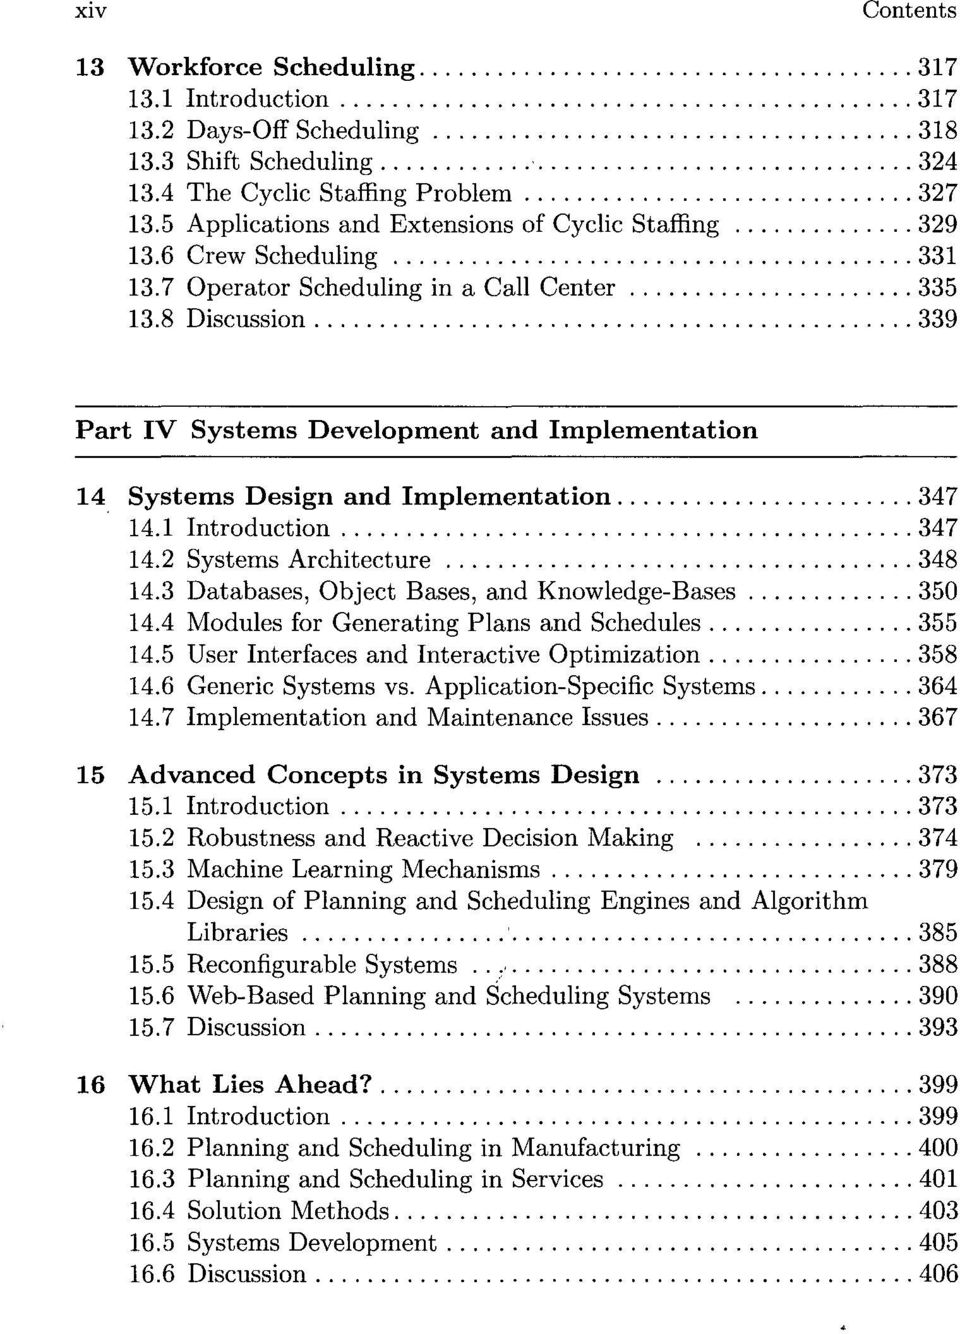 Planning and Scheduling in Manufacturing and Services - PDF